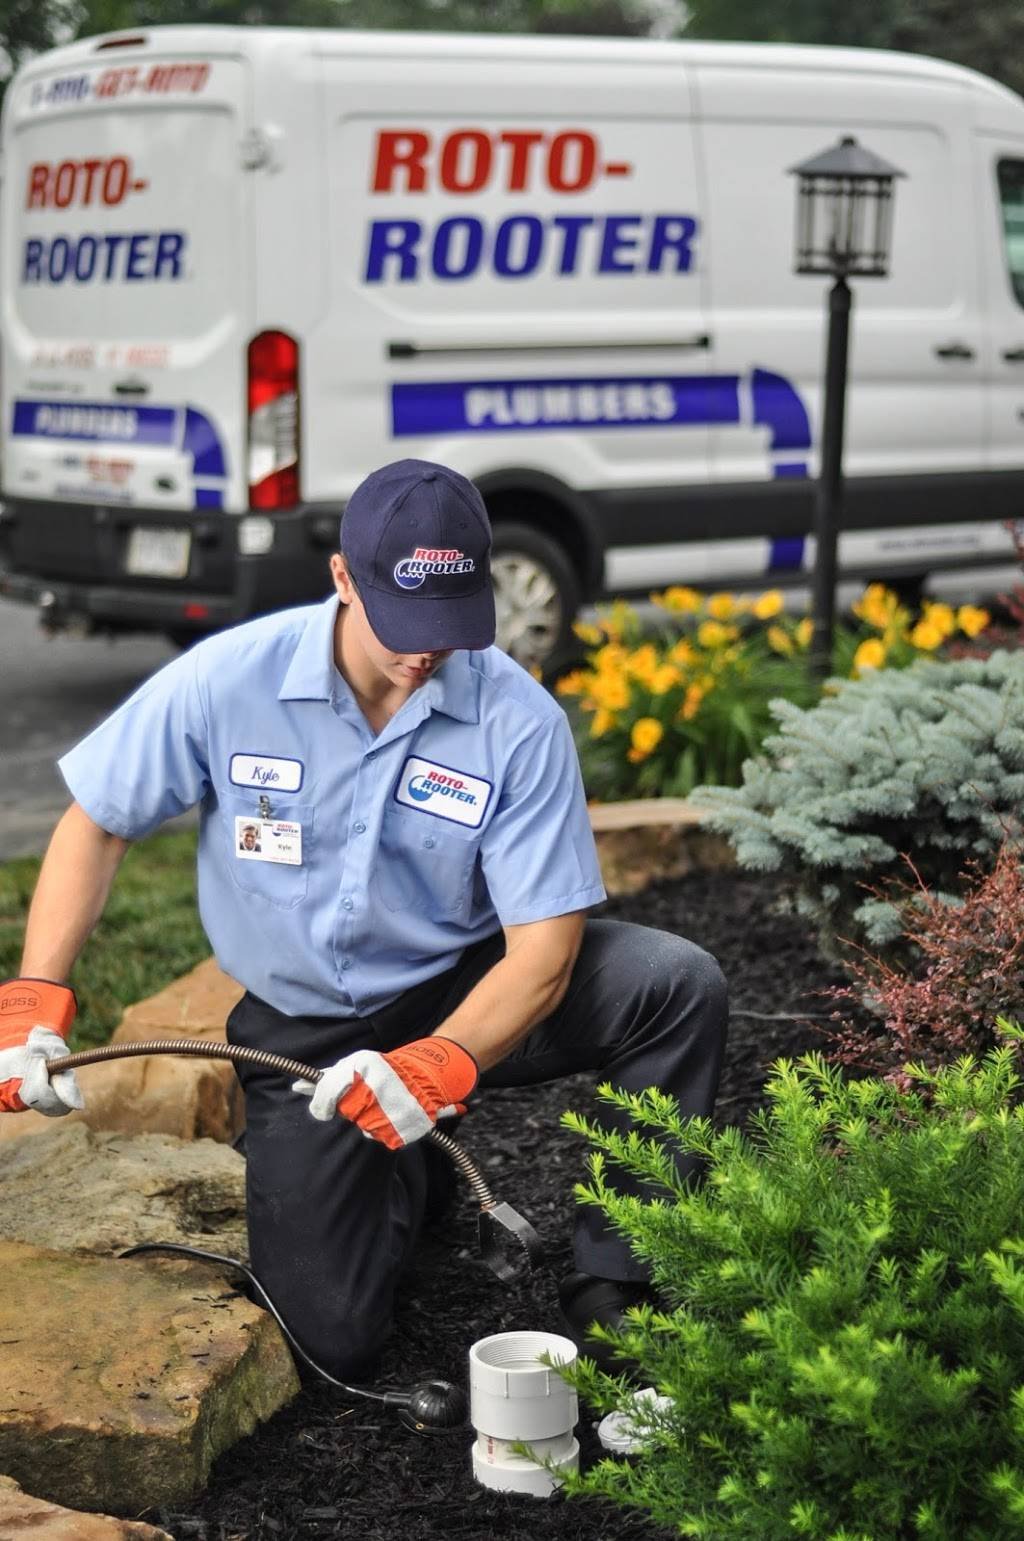 Roto-Rooter Plumbing & Water Cleanup - plumber  | Photo 1 of 7 | Address: 2125 Montana Ave, Cincinnati, OH 45211, USA | Phone: (513) 631-0595